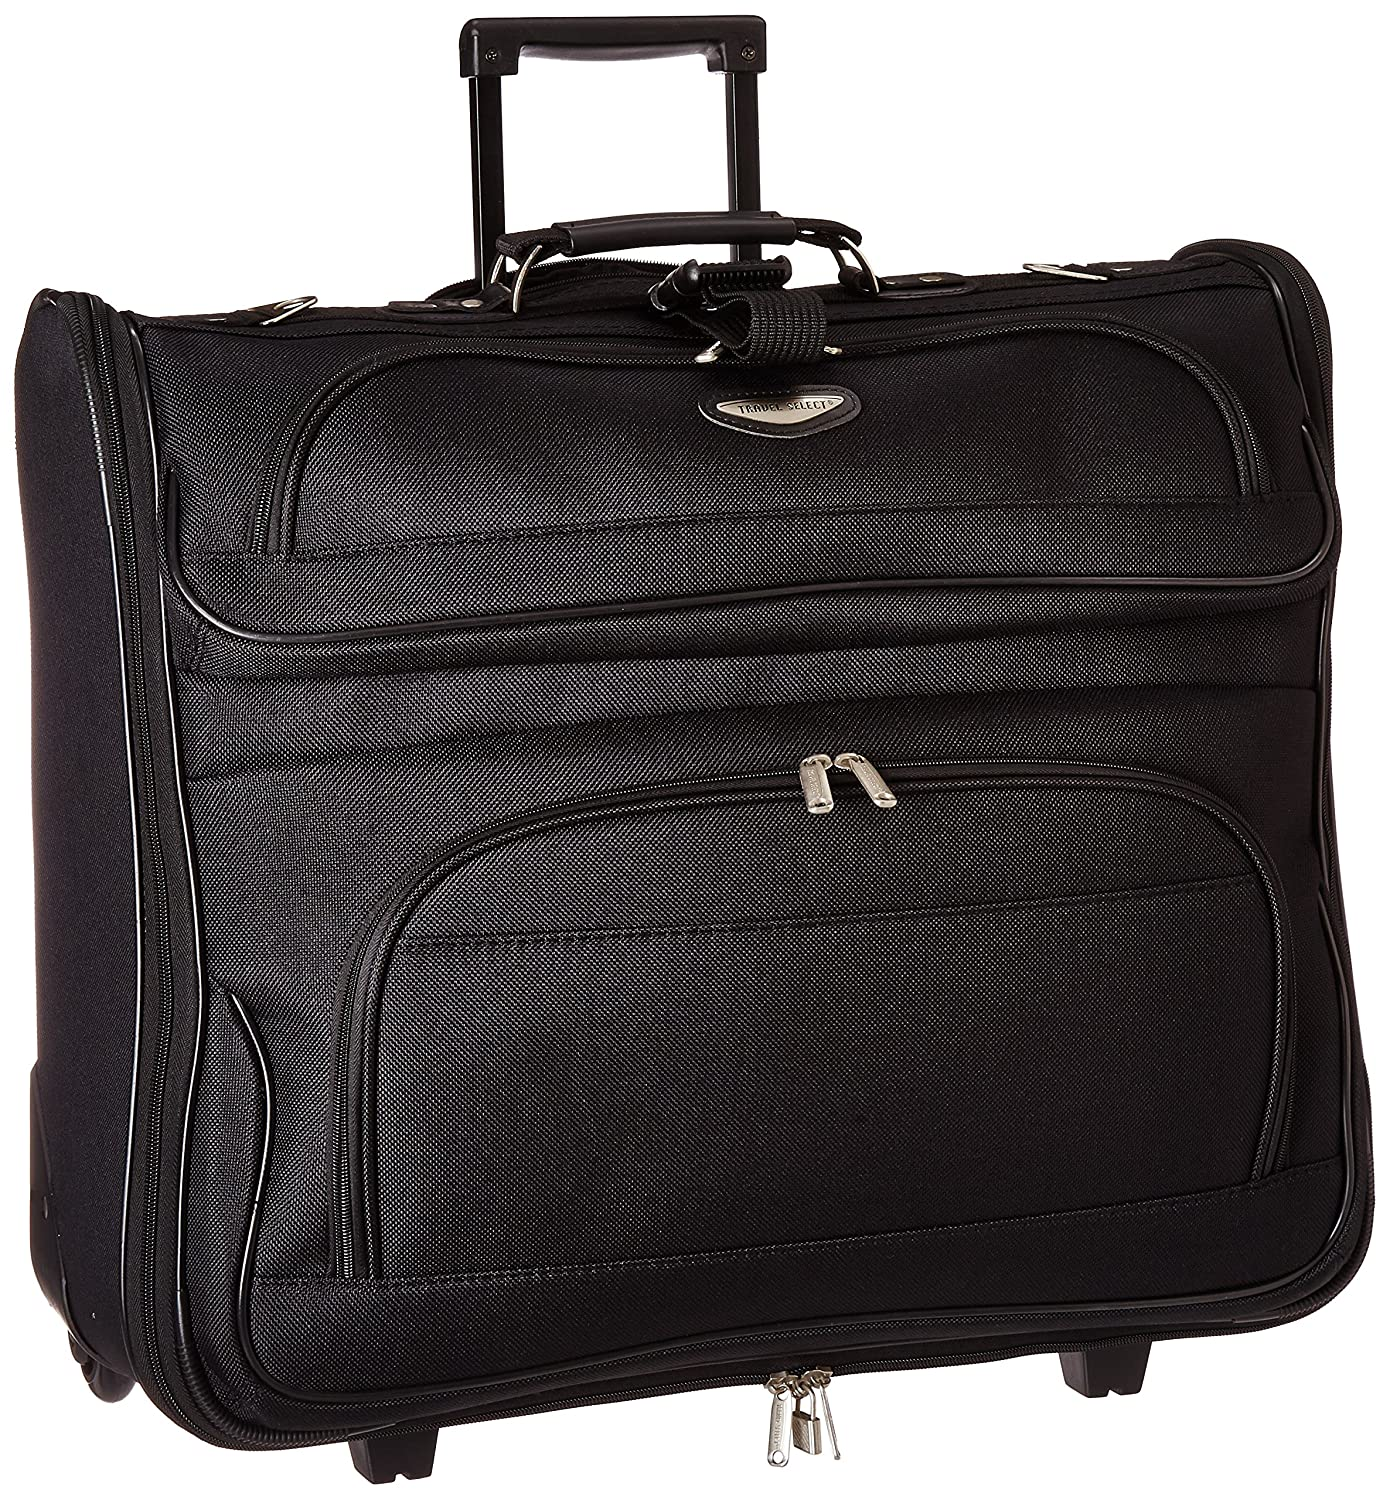 bc9ebeae72c9 Travel Select Amsterdam Business Rolling Garment Bag